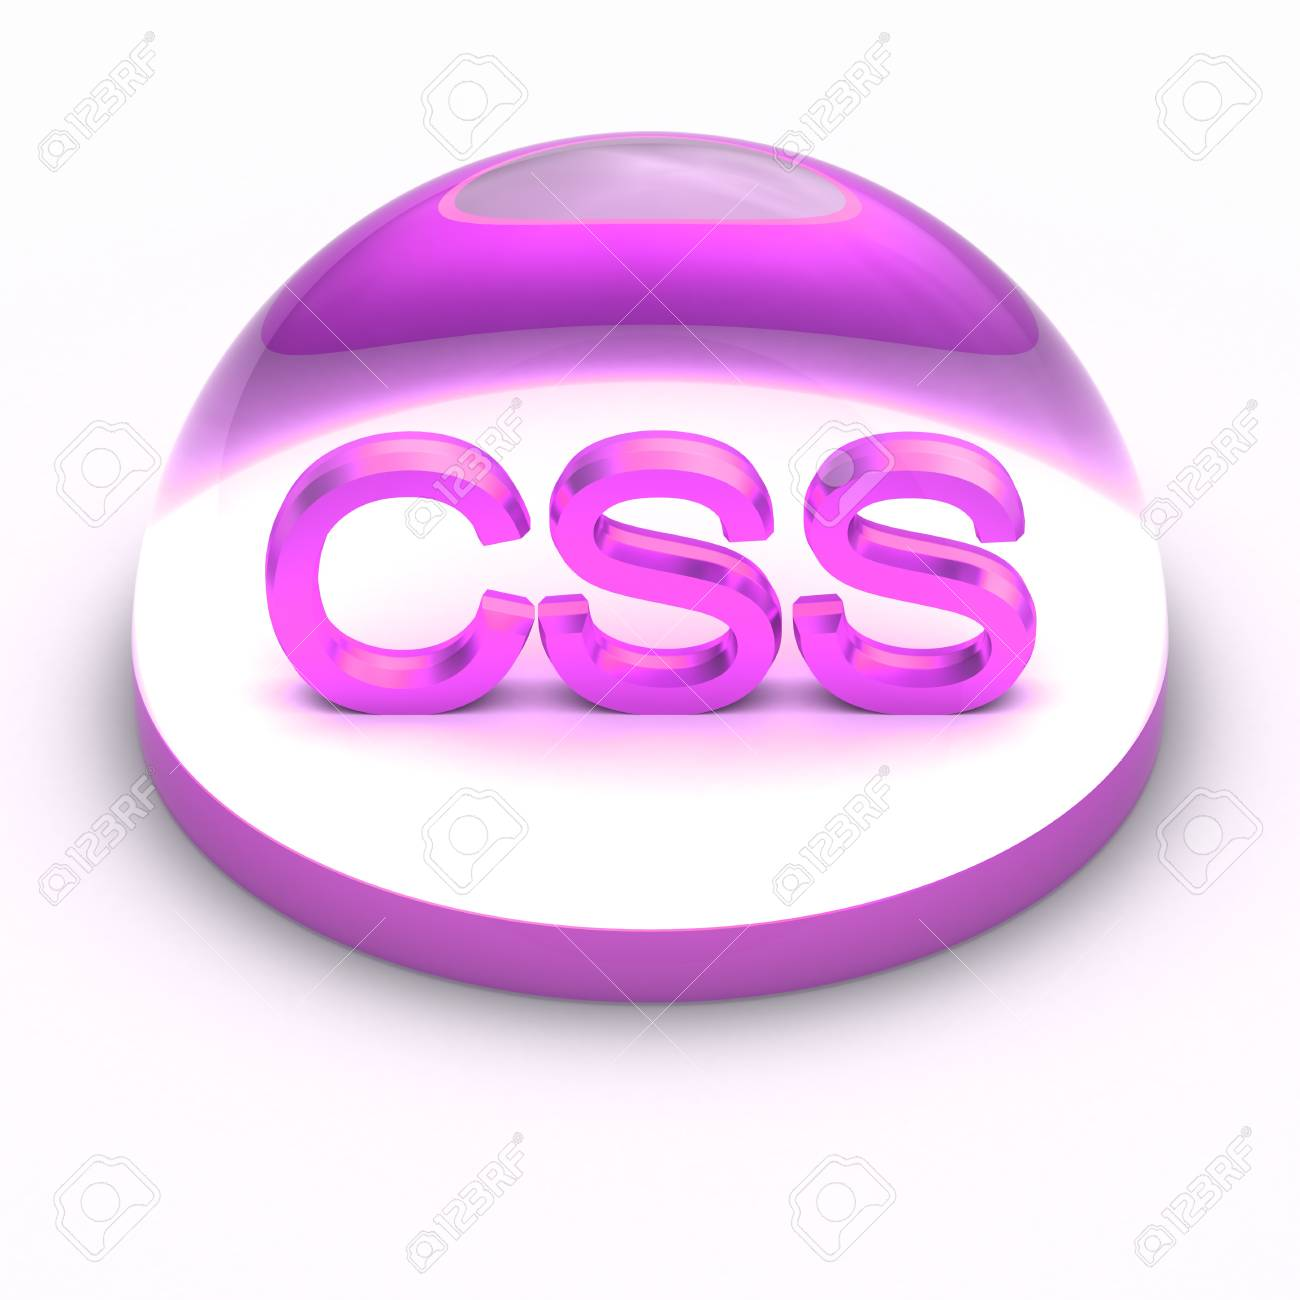 3D Style file format icon over white background - CSS Stock Photo - 12845811